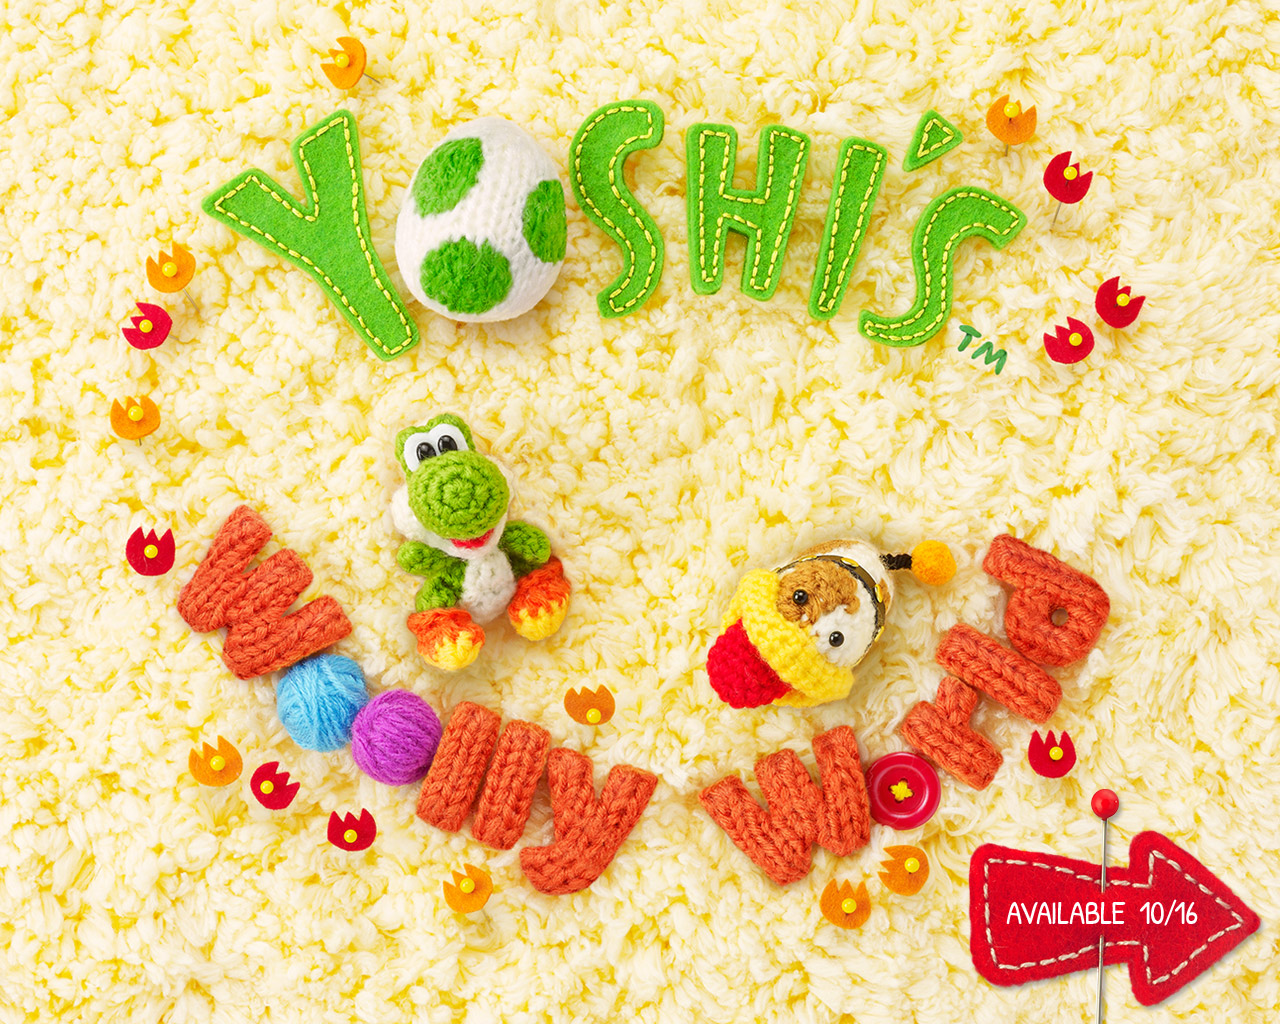 yoshis woolly world wallpaper 02 1280x1024